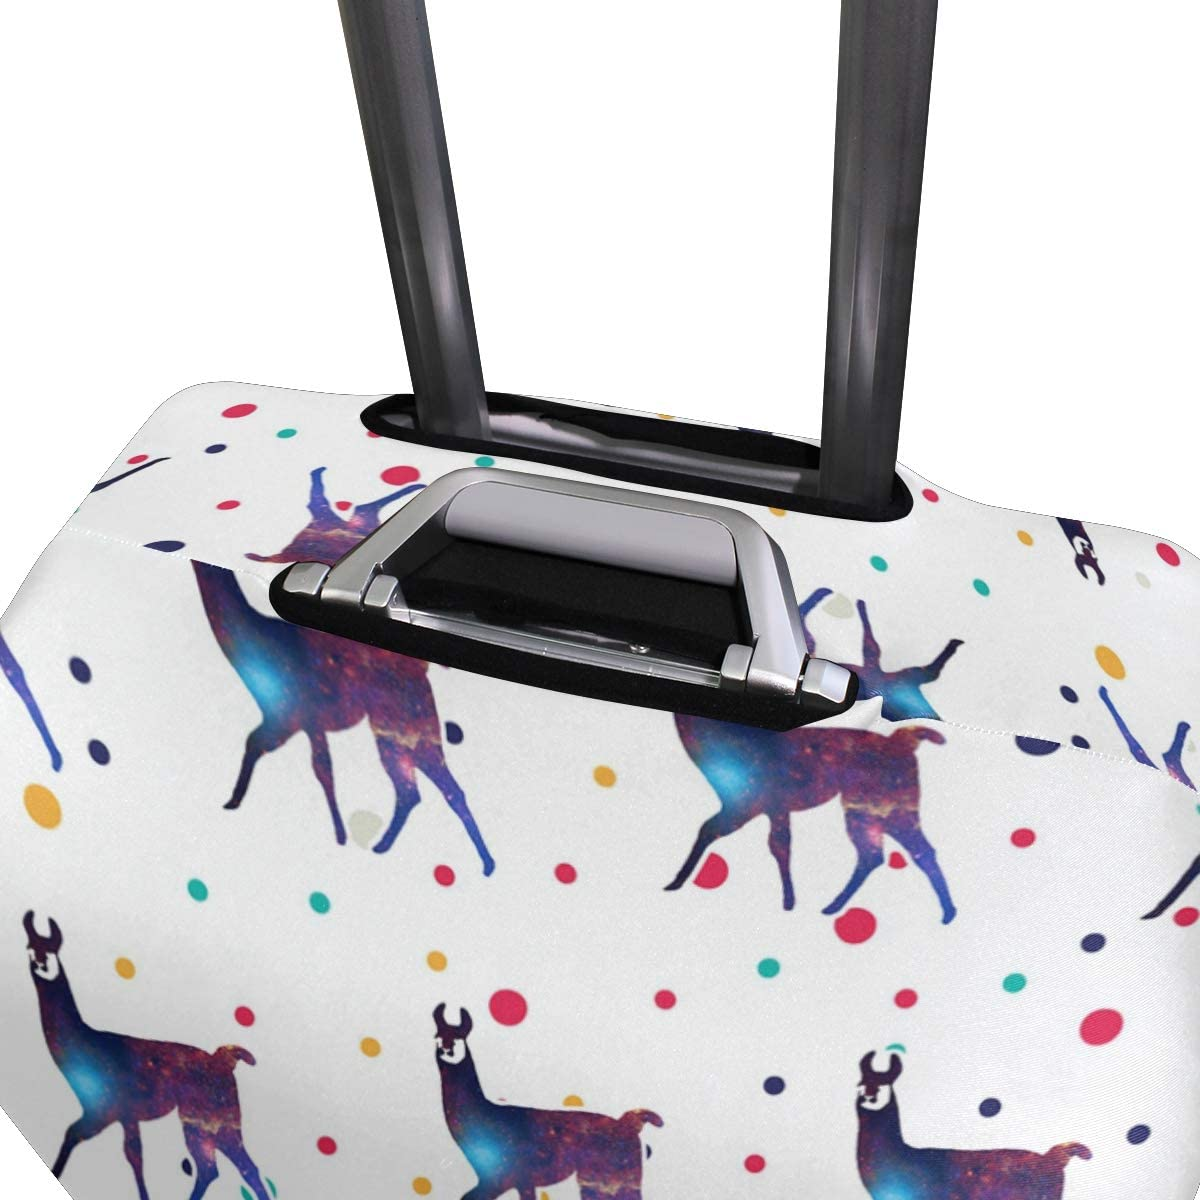 Space Llama Travel Luggage Cover Suitcase Protector HLive Spandex Dust Proof Covers with Zipper Fits 18-32 inch